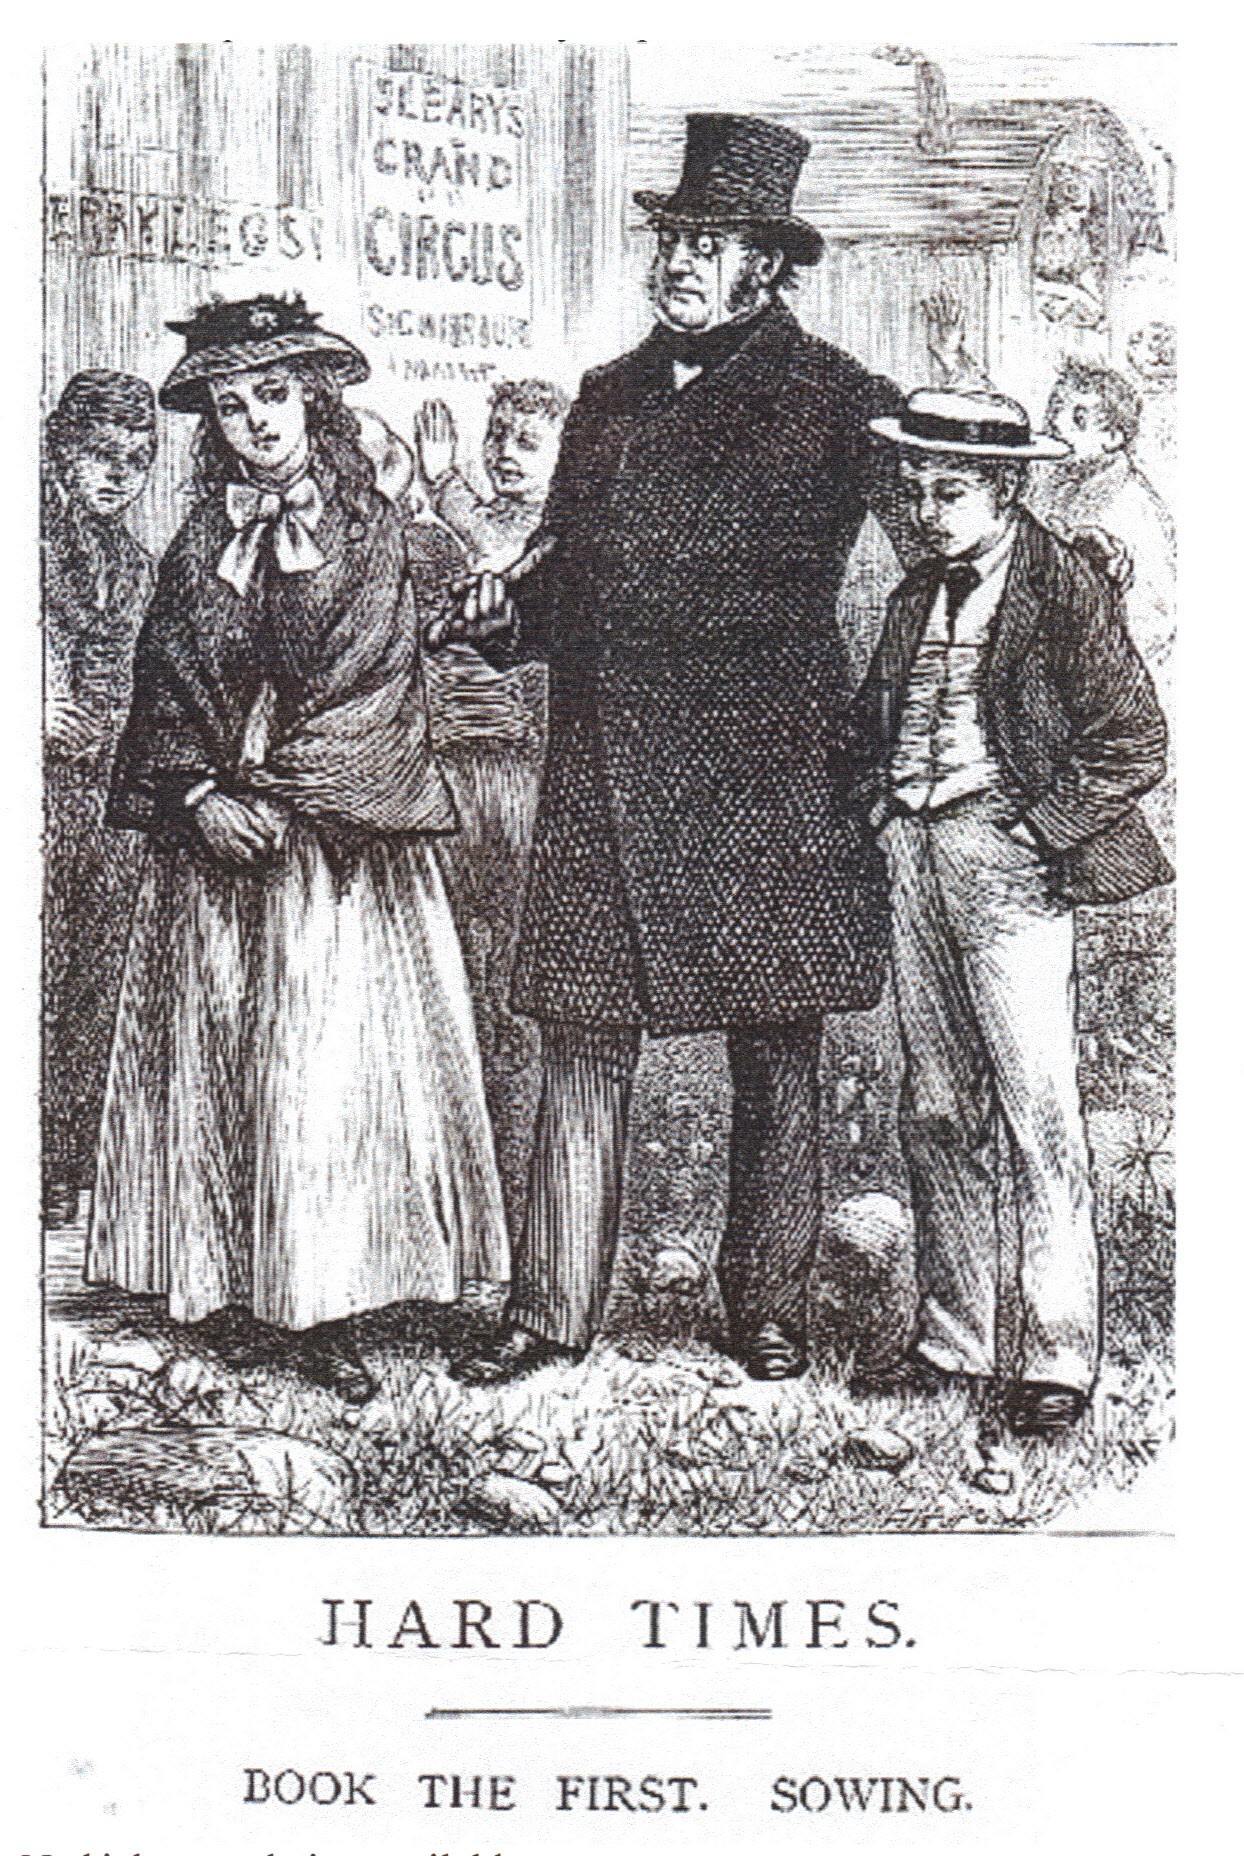 a literary analysis of hard times by charles dickens The question of realism in hard times pp 41-44 through the analysis of a chapter from one of dickens's novels charles dickens, hard times, novel.